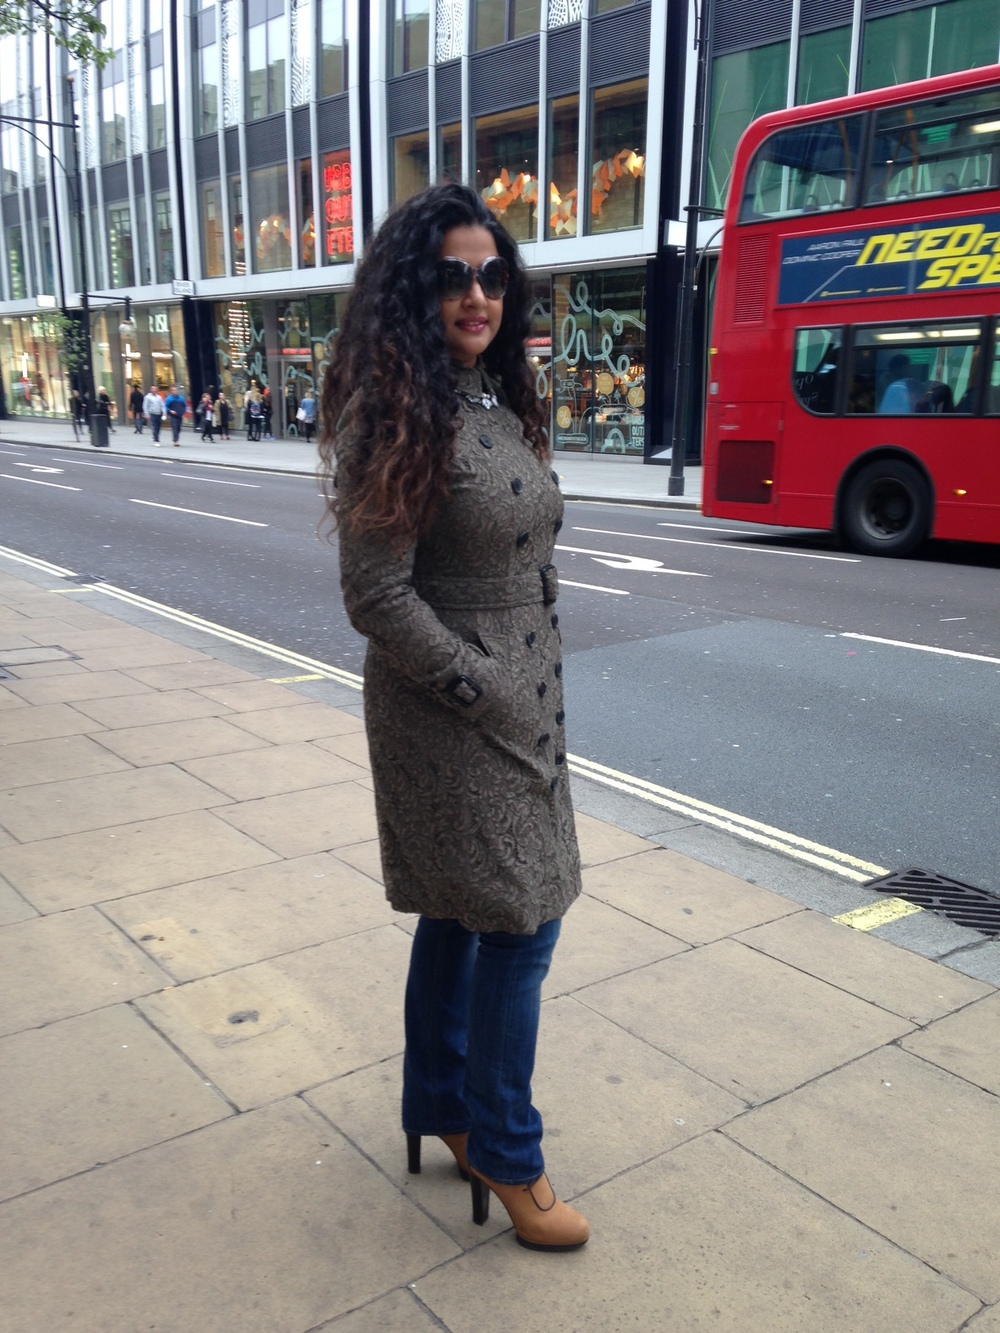 london-styling-sanjana-tpw-0198.JPG